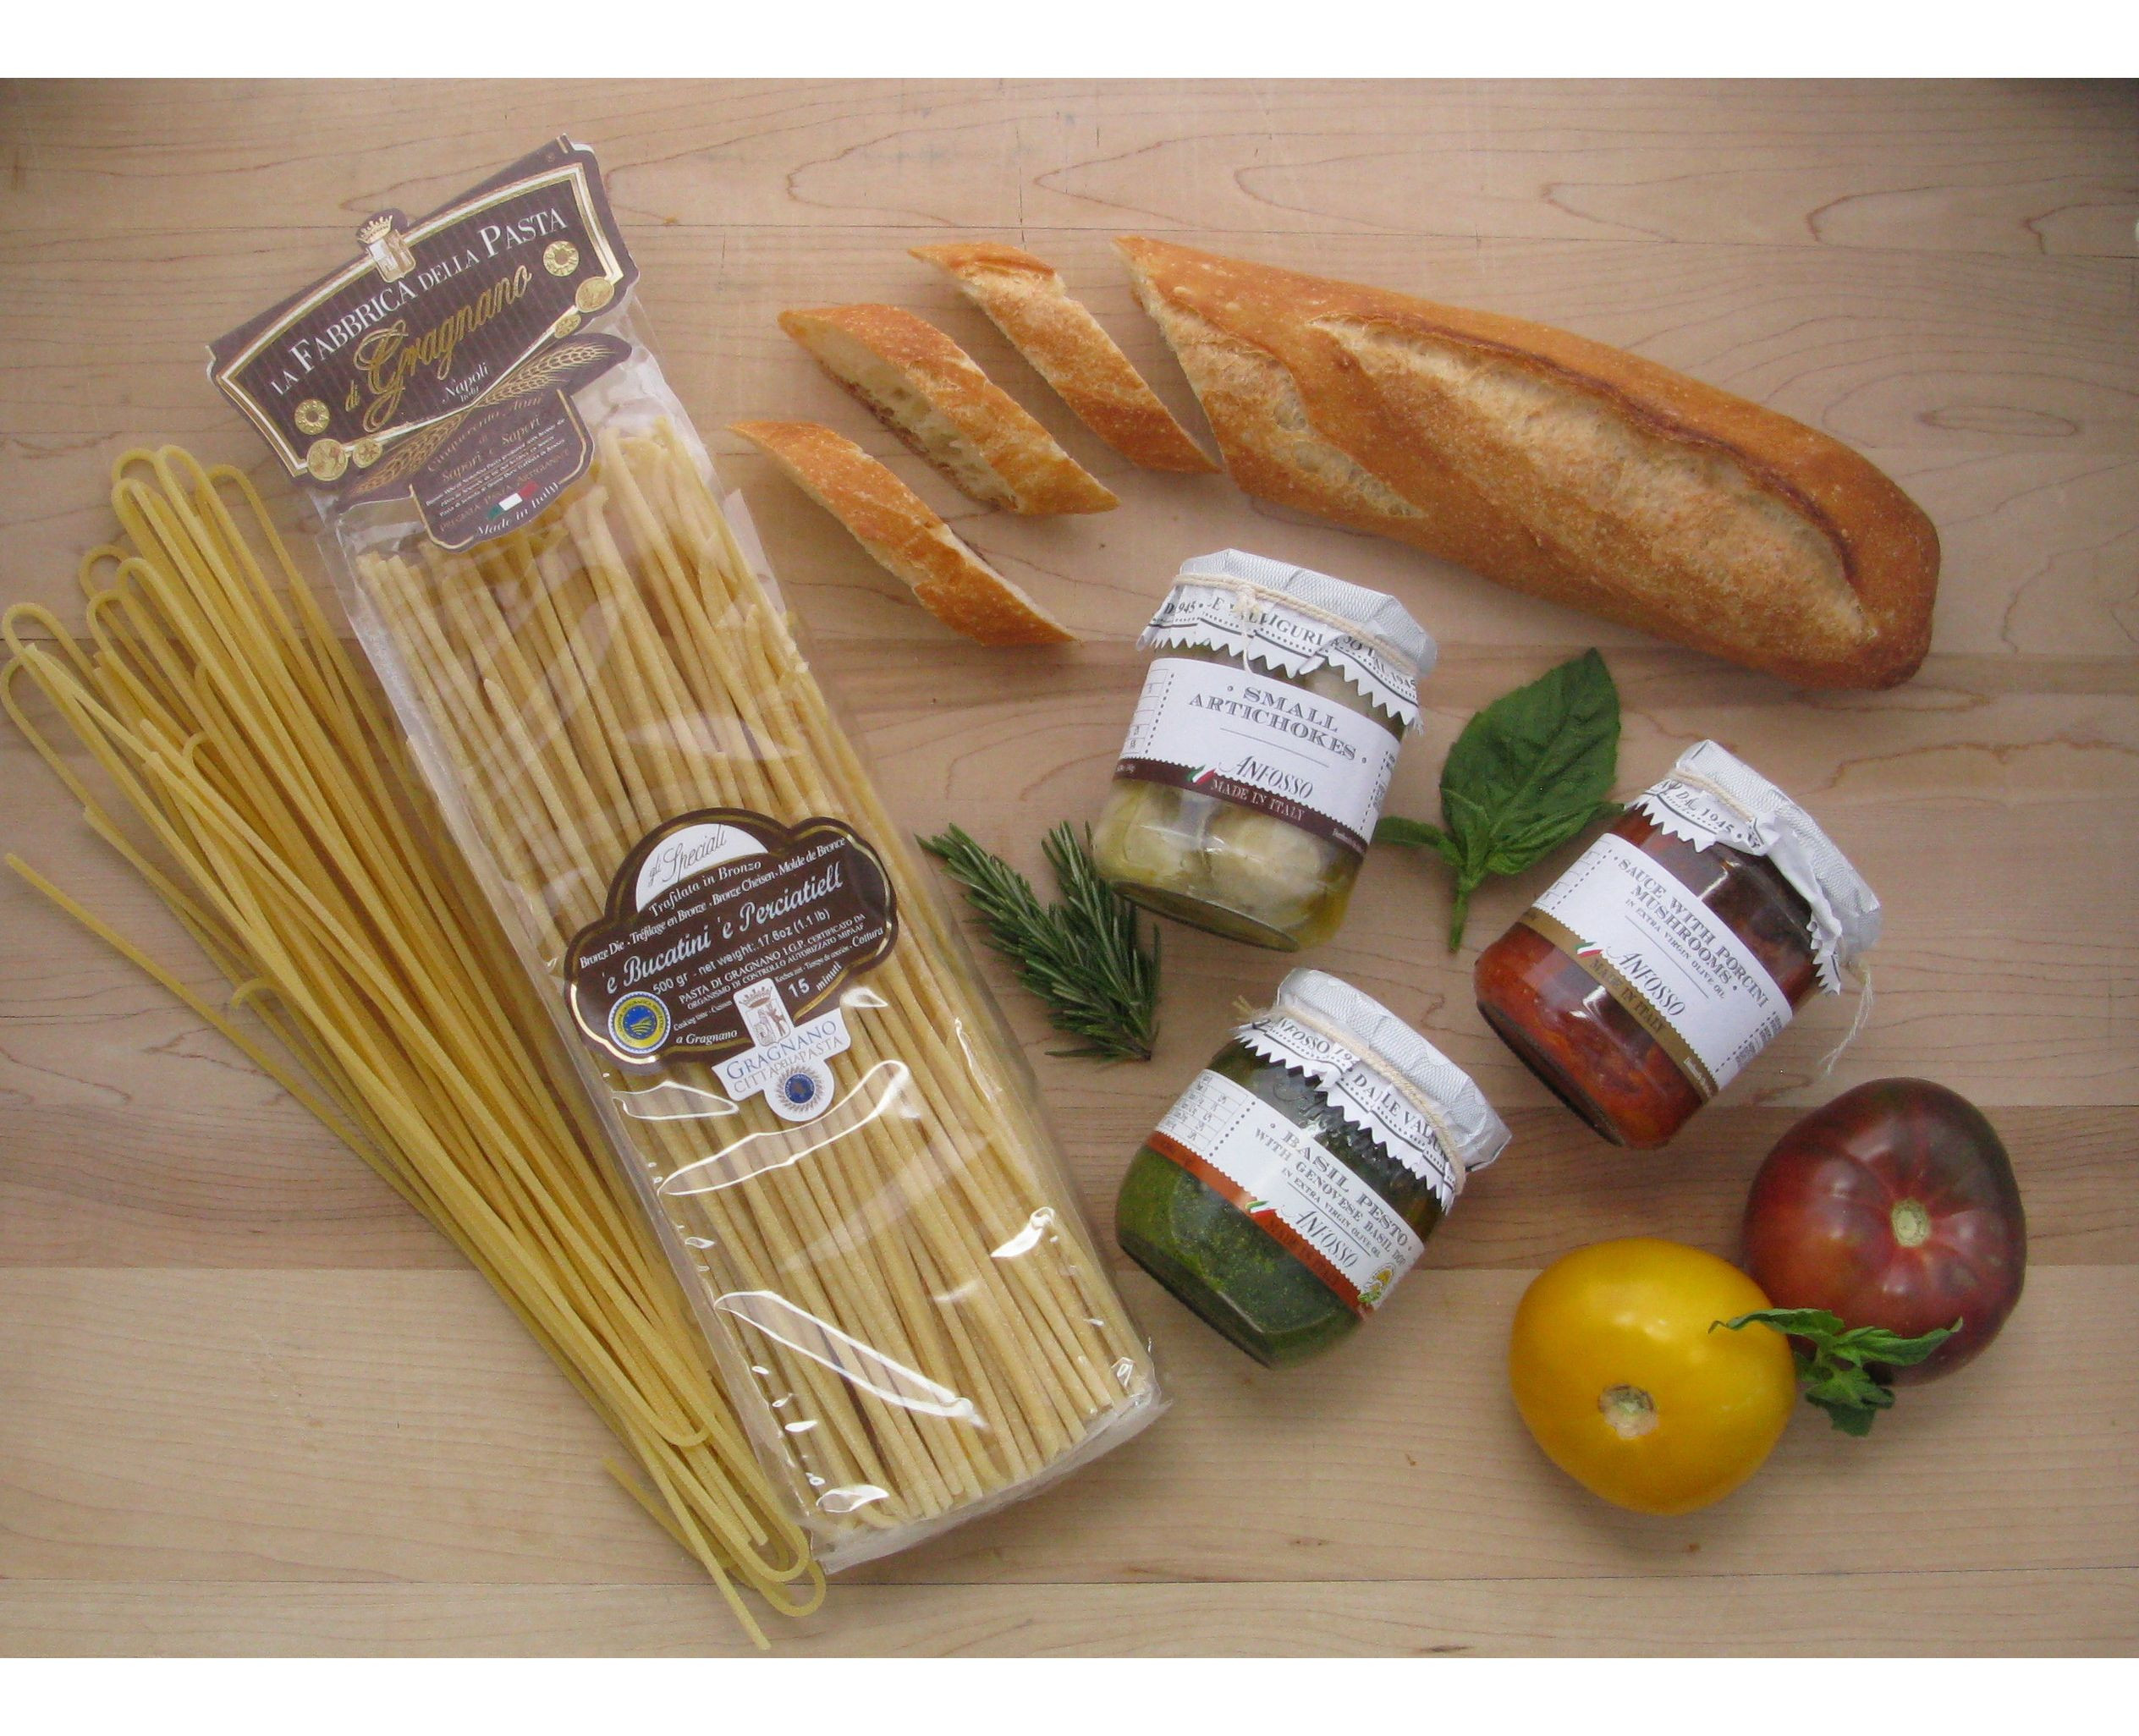 Food Gift Baskets Ideas  Gourmet Food Baskets Mouthwatering Gift Ideas